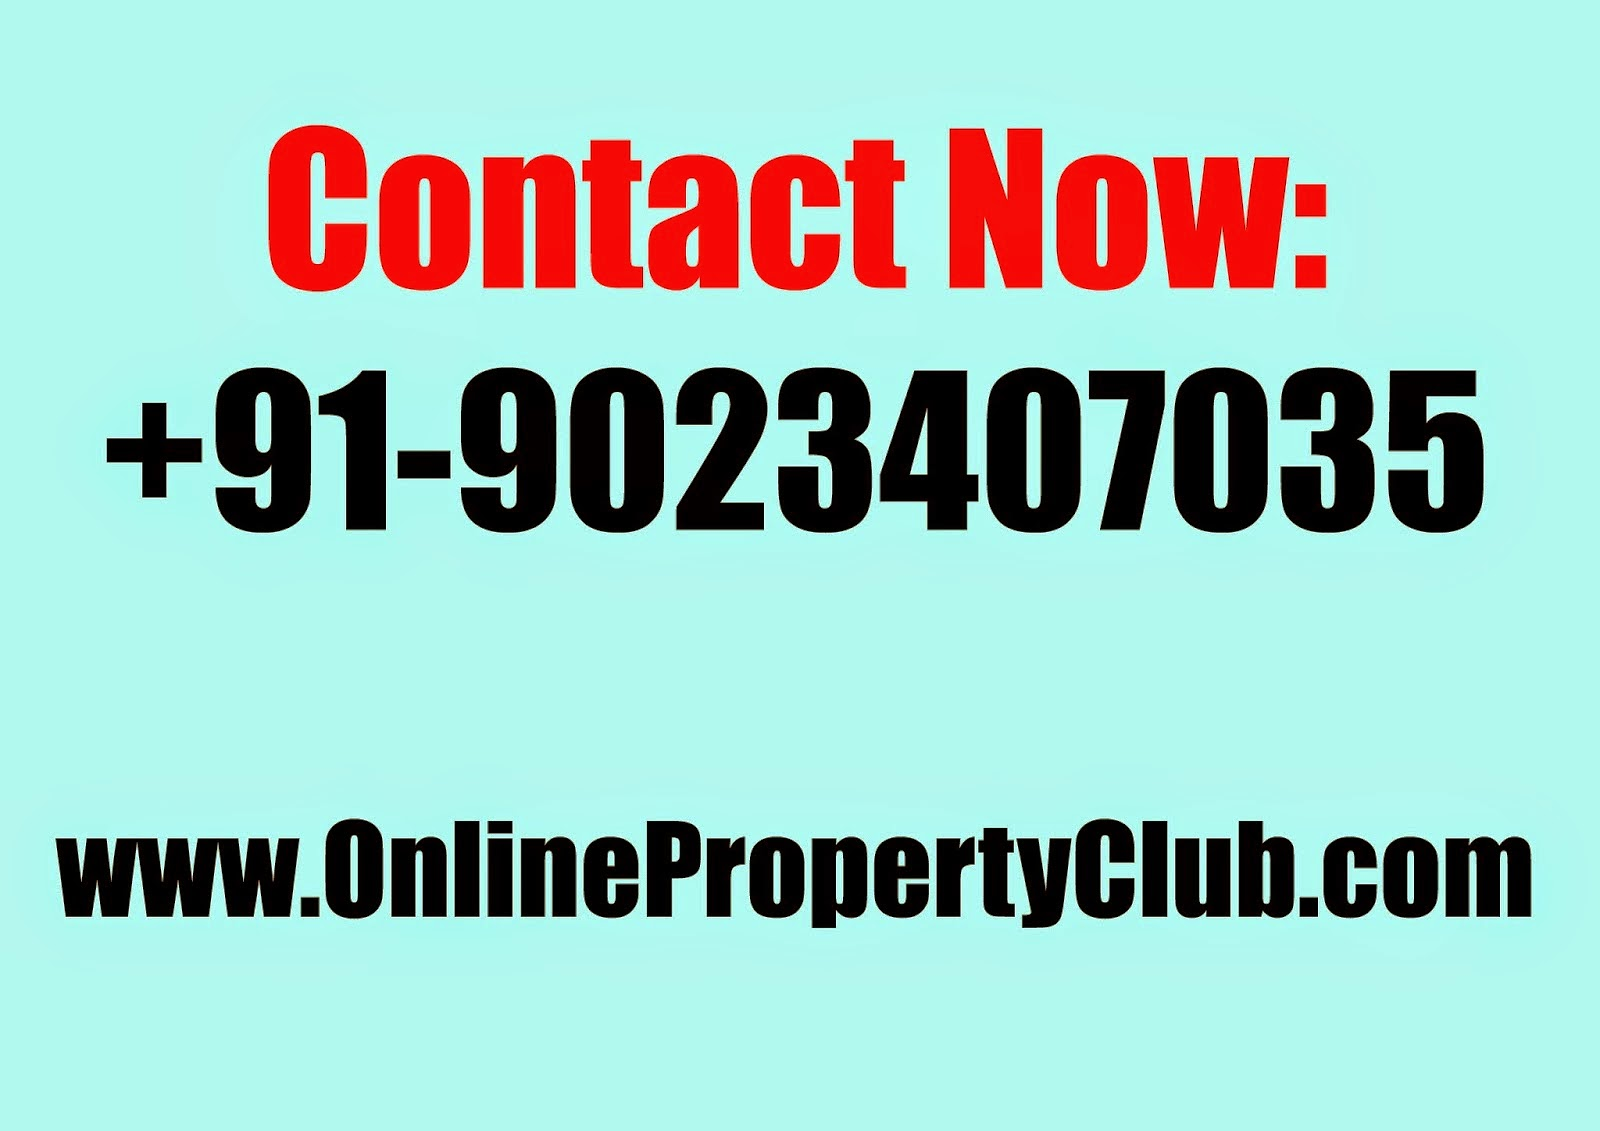 Altus Space Builders Commercial SCO (Showroom) property in mullanpur